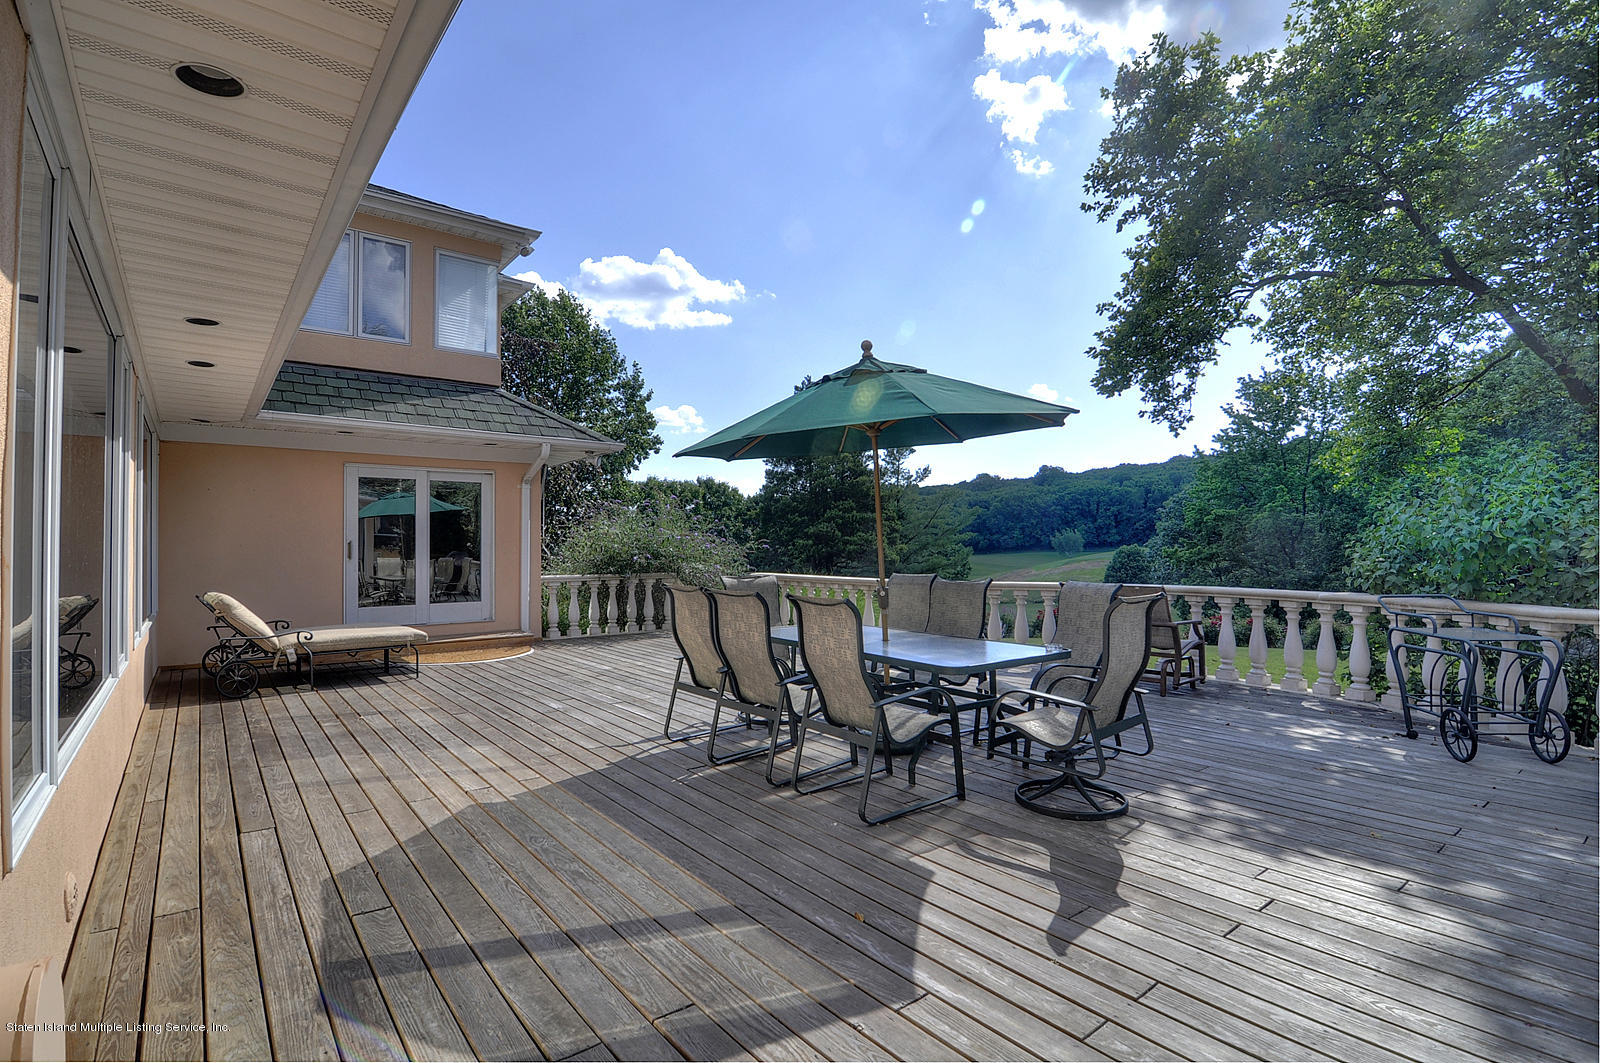 Single Family - Detached 738 Todt Hill Road  Staten Island, NY 10301, MLS-1127956-18